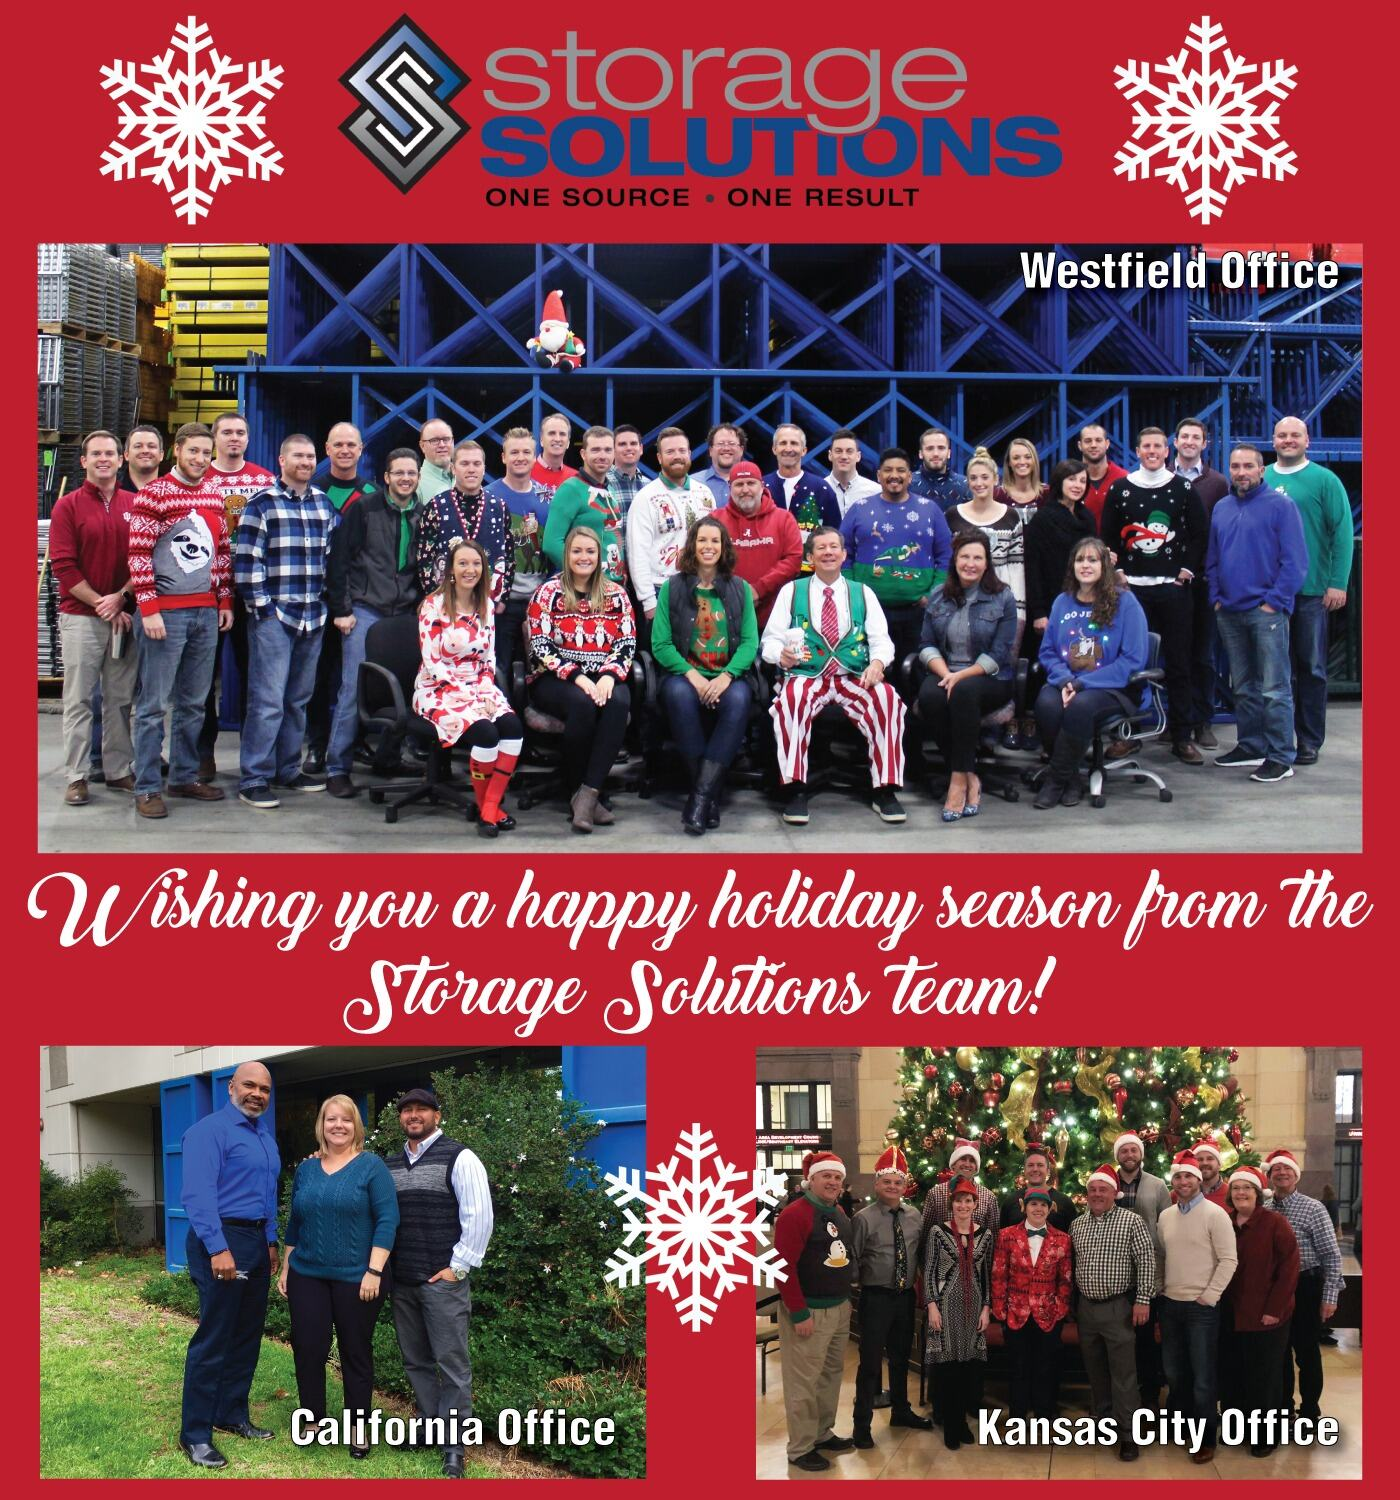 Inventory and Holiday Hours